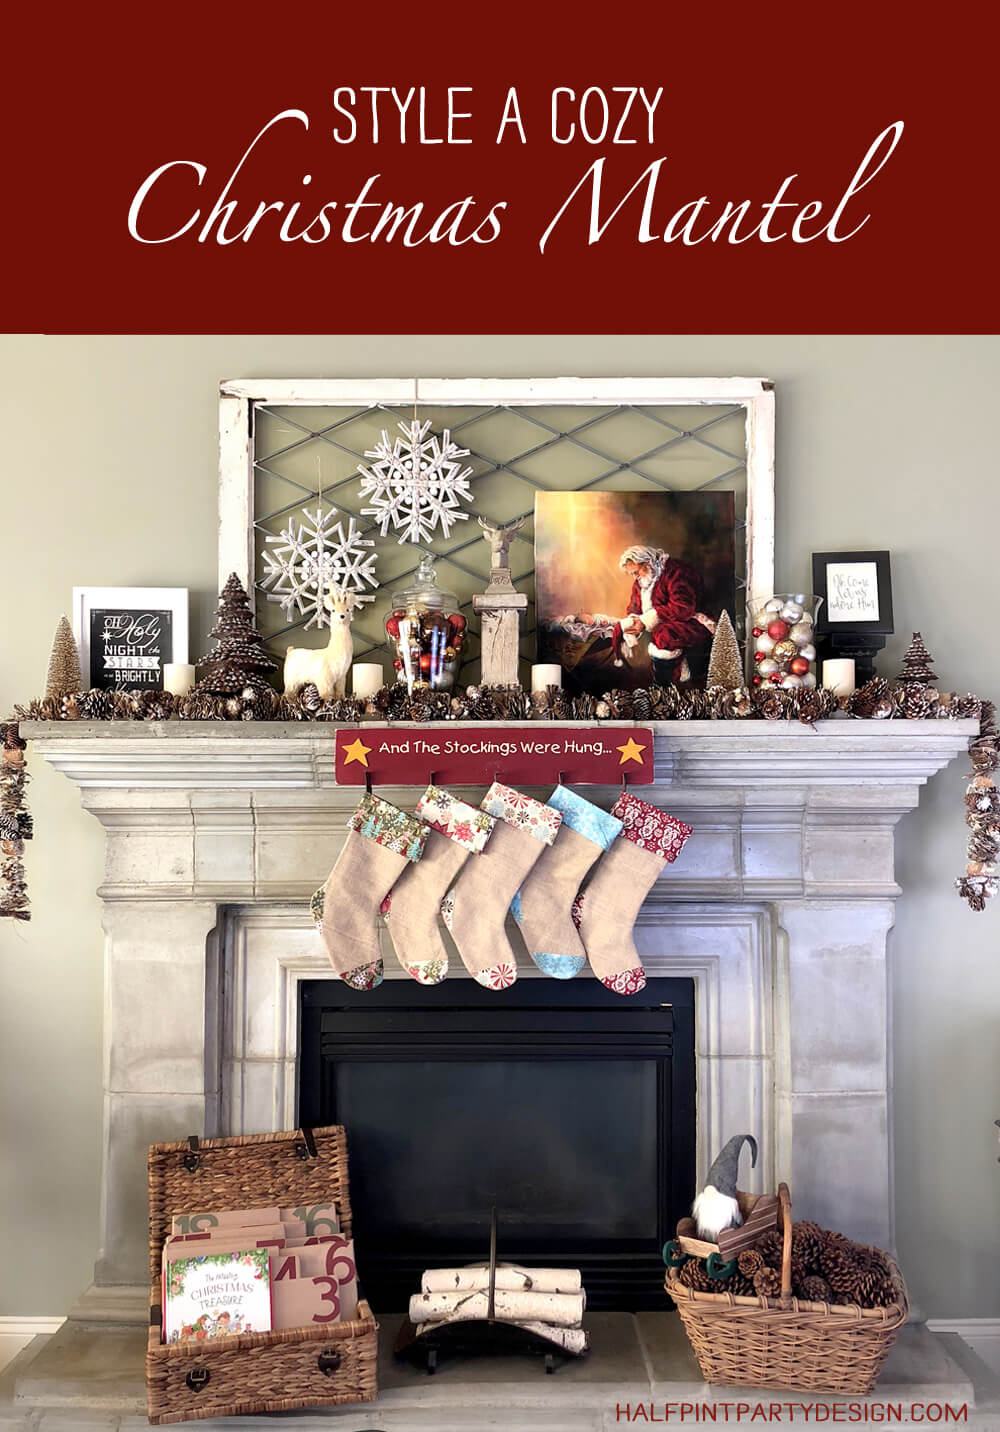 Style a cozy rustic woodland Christmas mantel